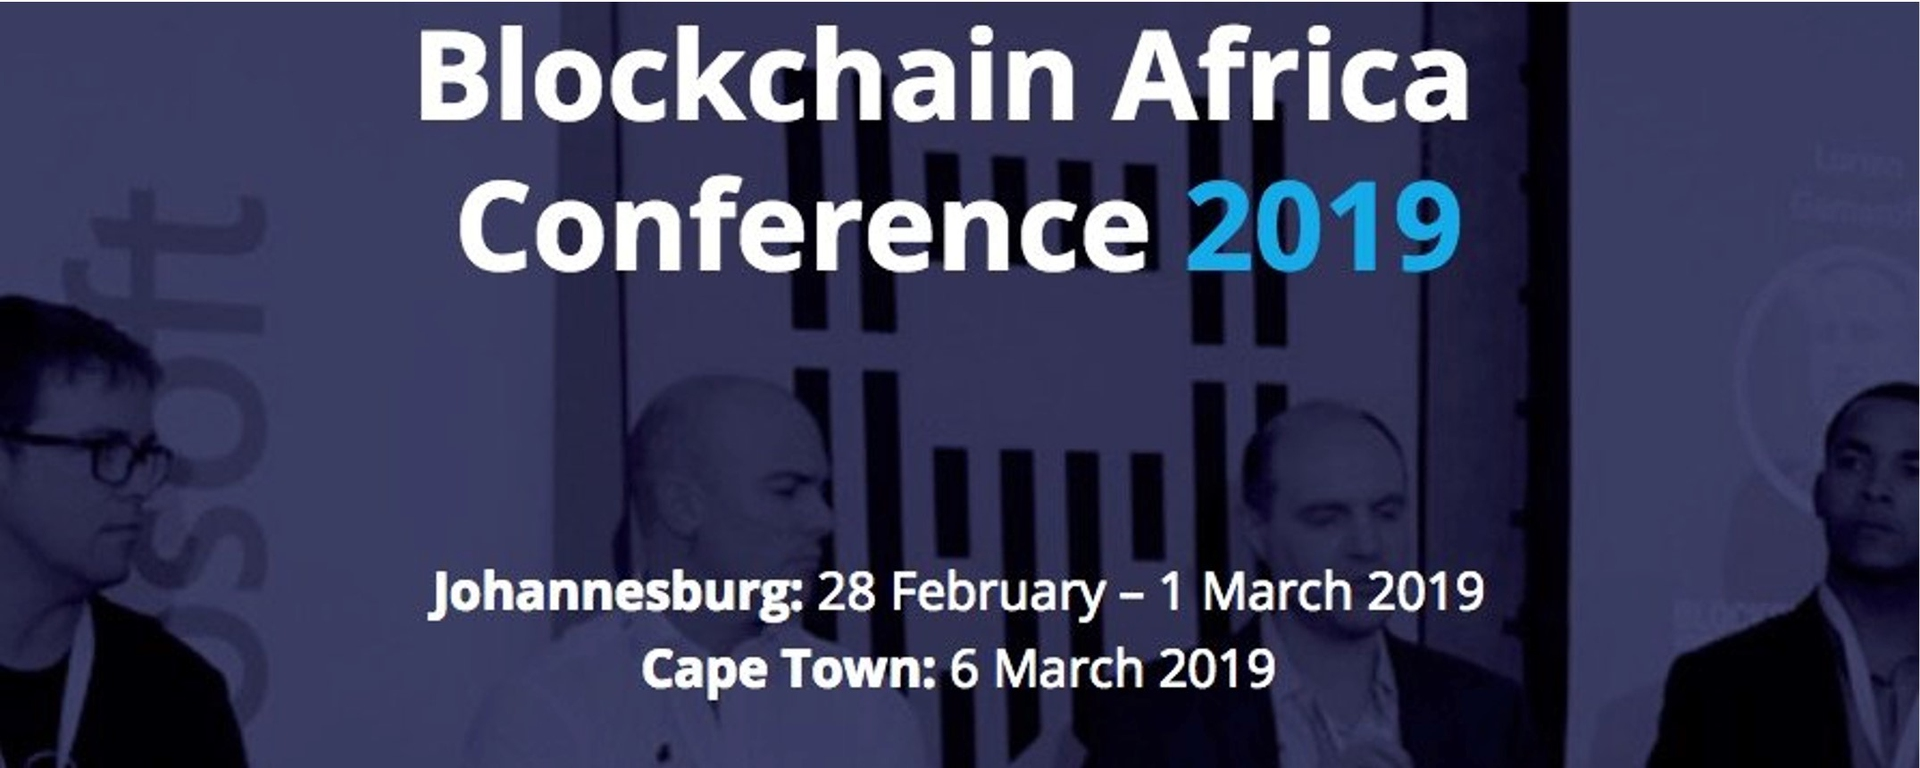 Blockchain Africa - Blockchain Africa Conference 2019 Johannesburg Movemeback African event cover image